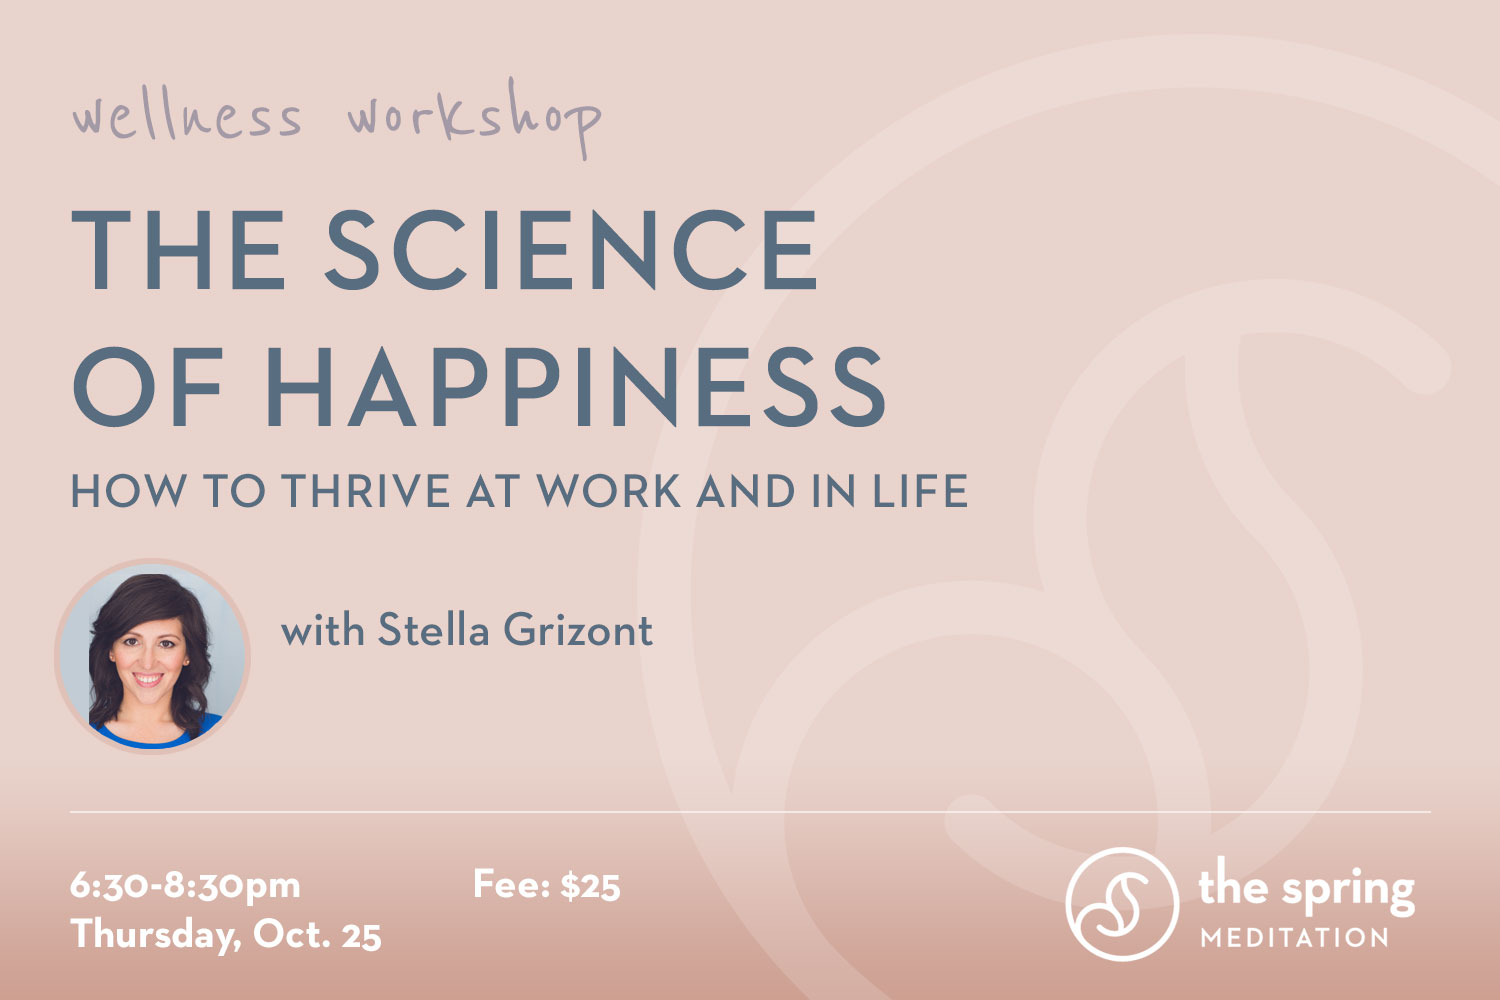 thespringmeditation-wellness-workshop-science-of-happiness-stella-grizont.jpg